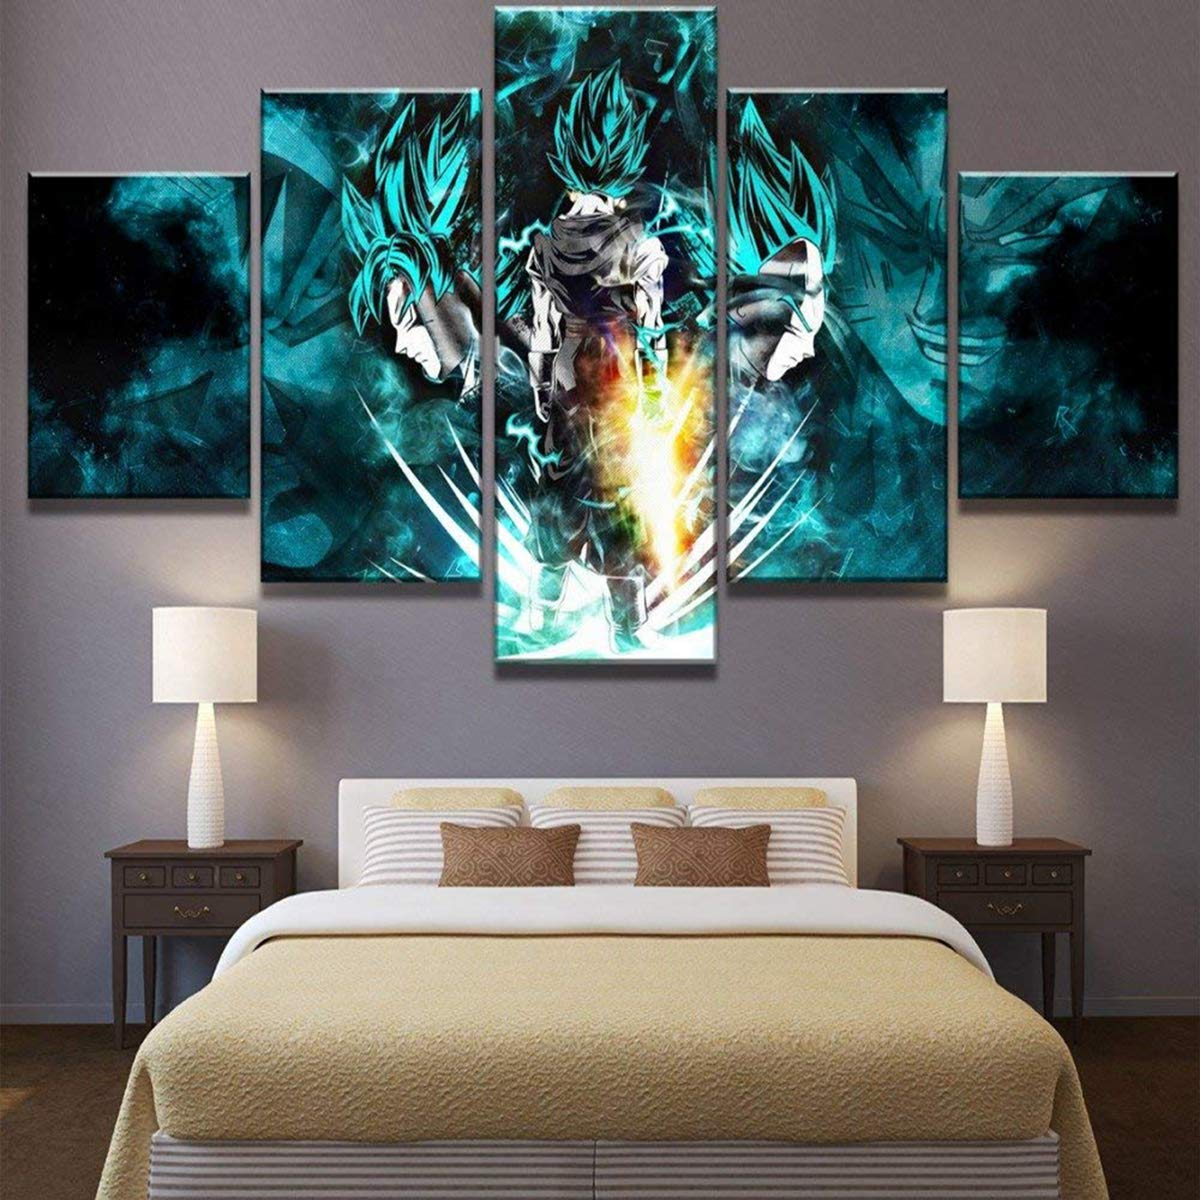 Amazon com natvva 5 pieces paintings anime posters wall art